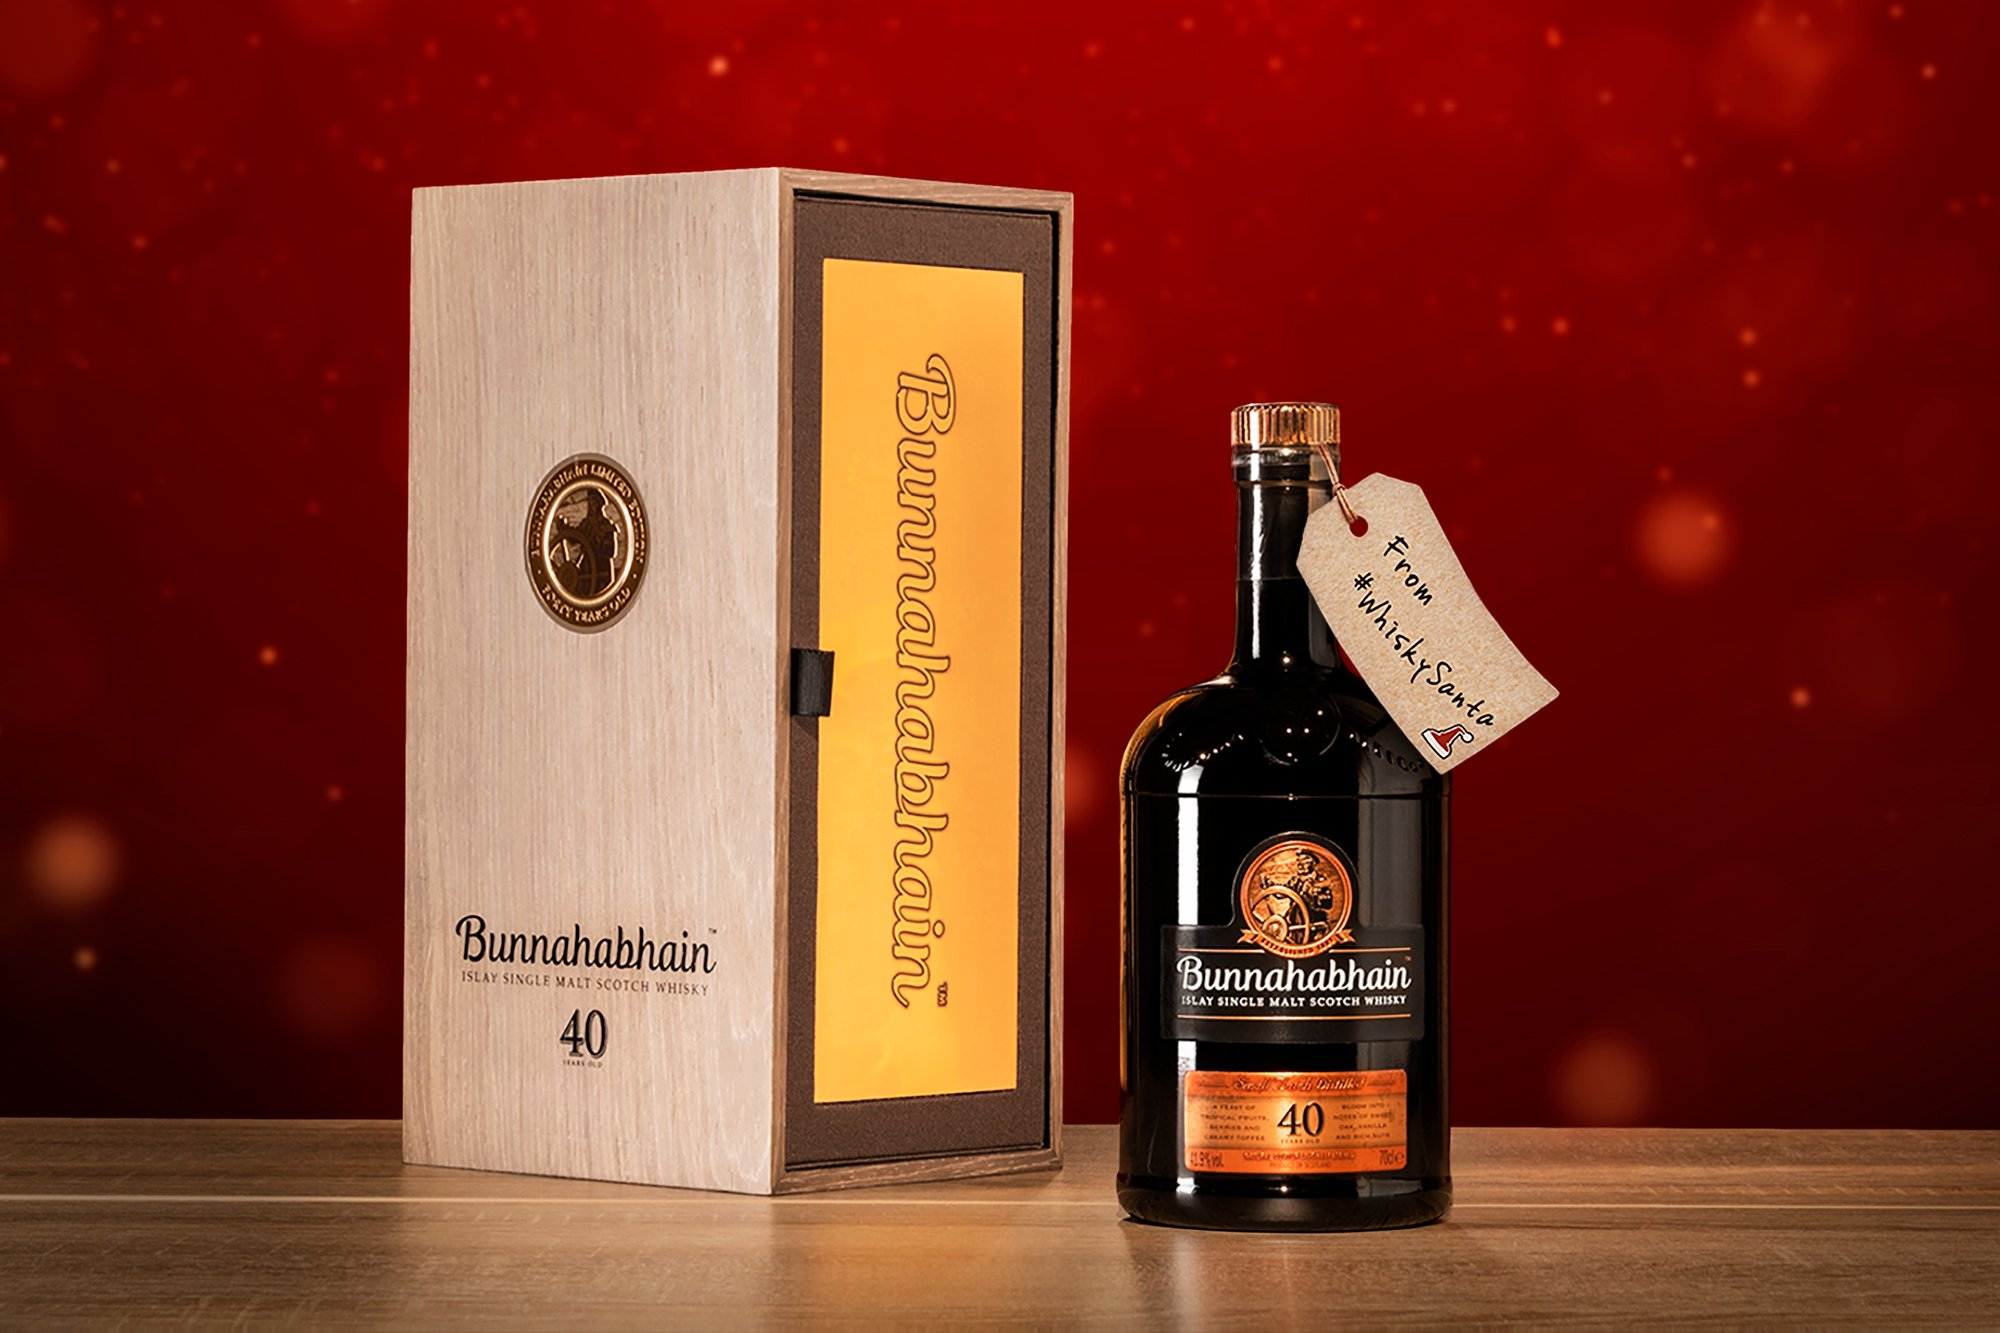 Bunnahabhain 40 Year Old #WhiskySanta